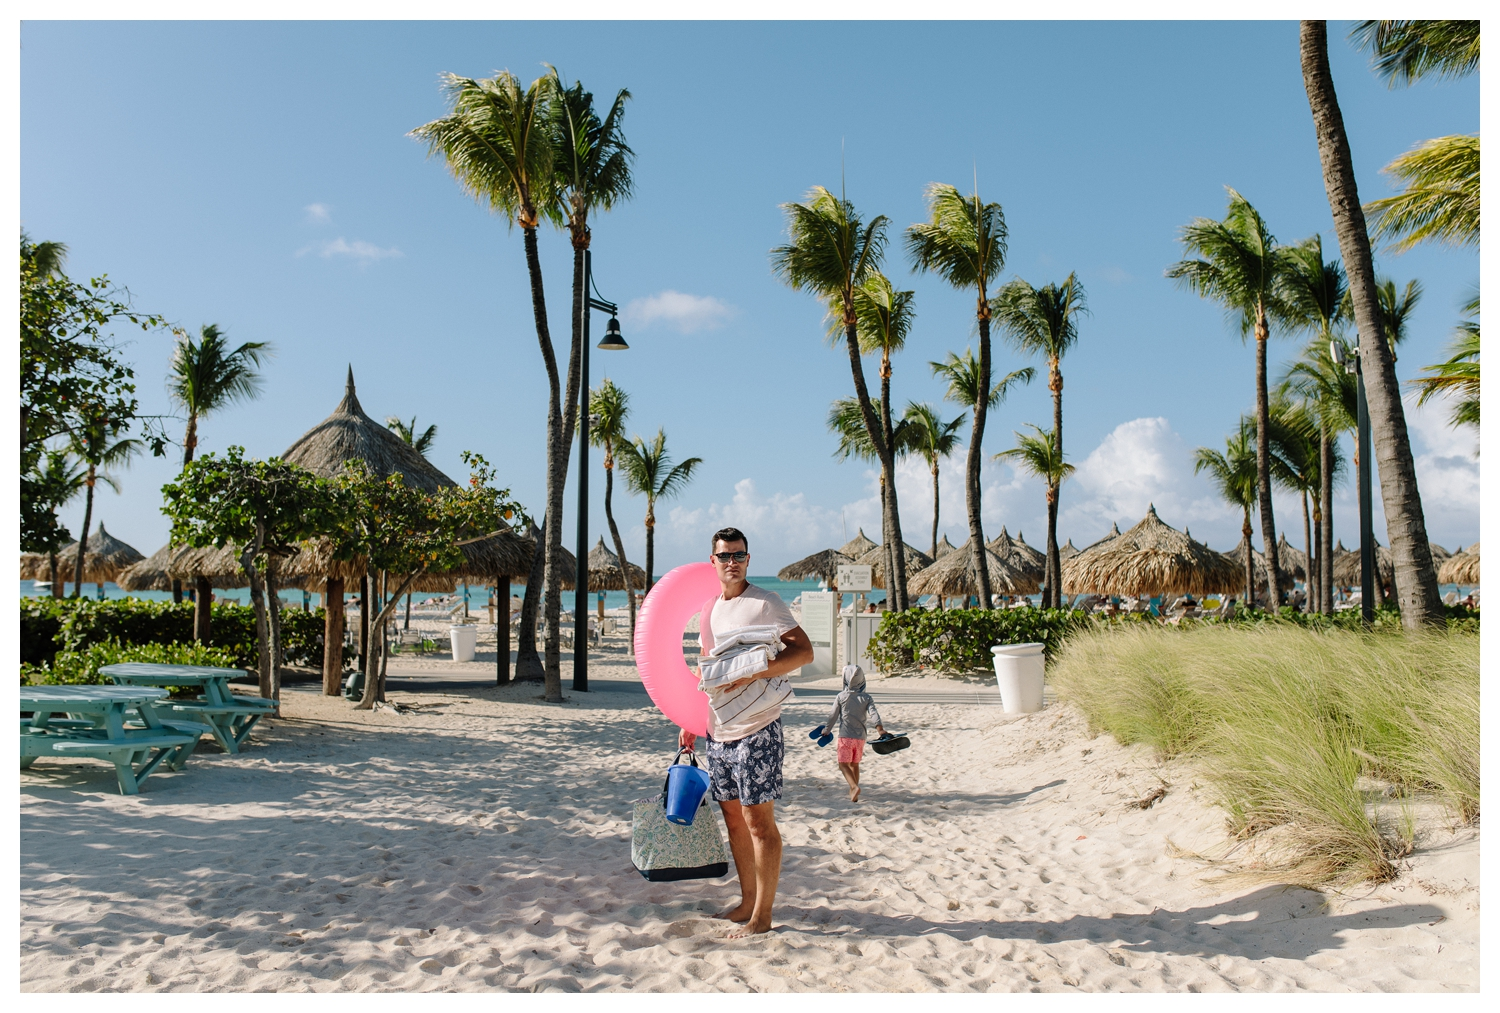 Dad Carrying Pink Float on Aruba's Beach Family Vacation.jpg